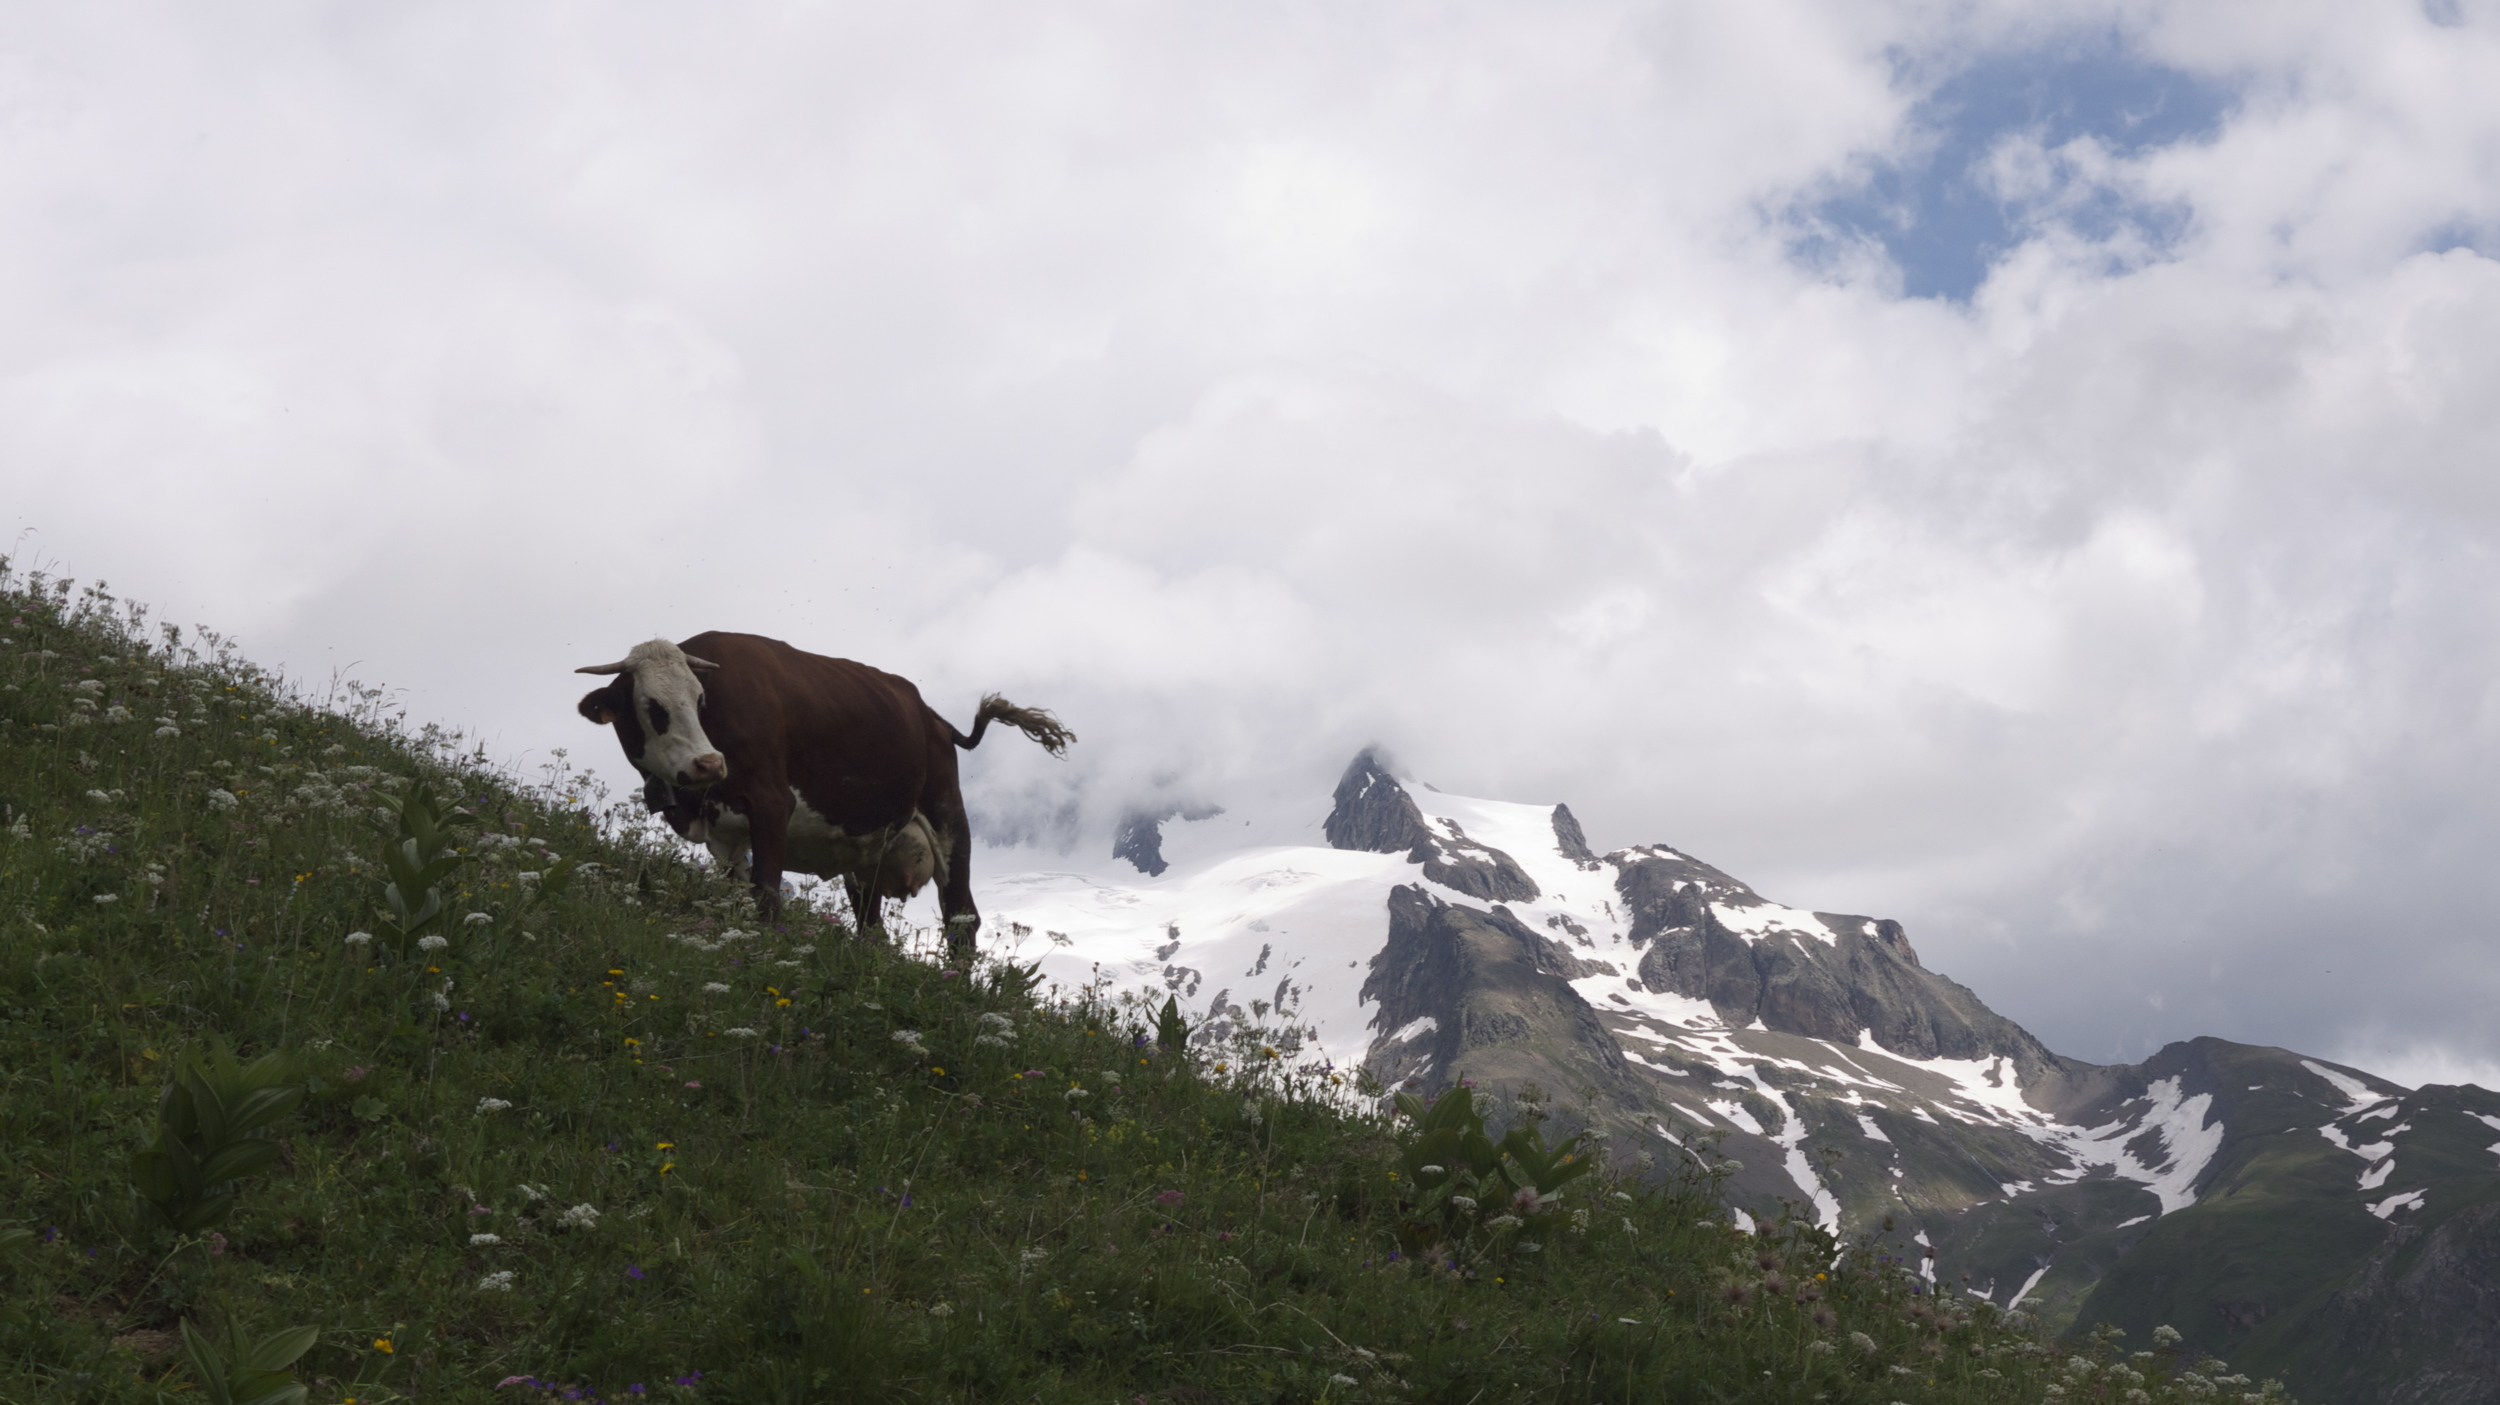 Dairy cows roam some meadows, their big traditional bells ringing over the alp.